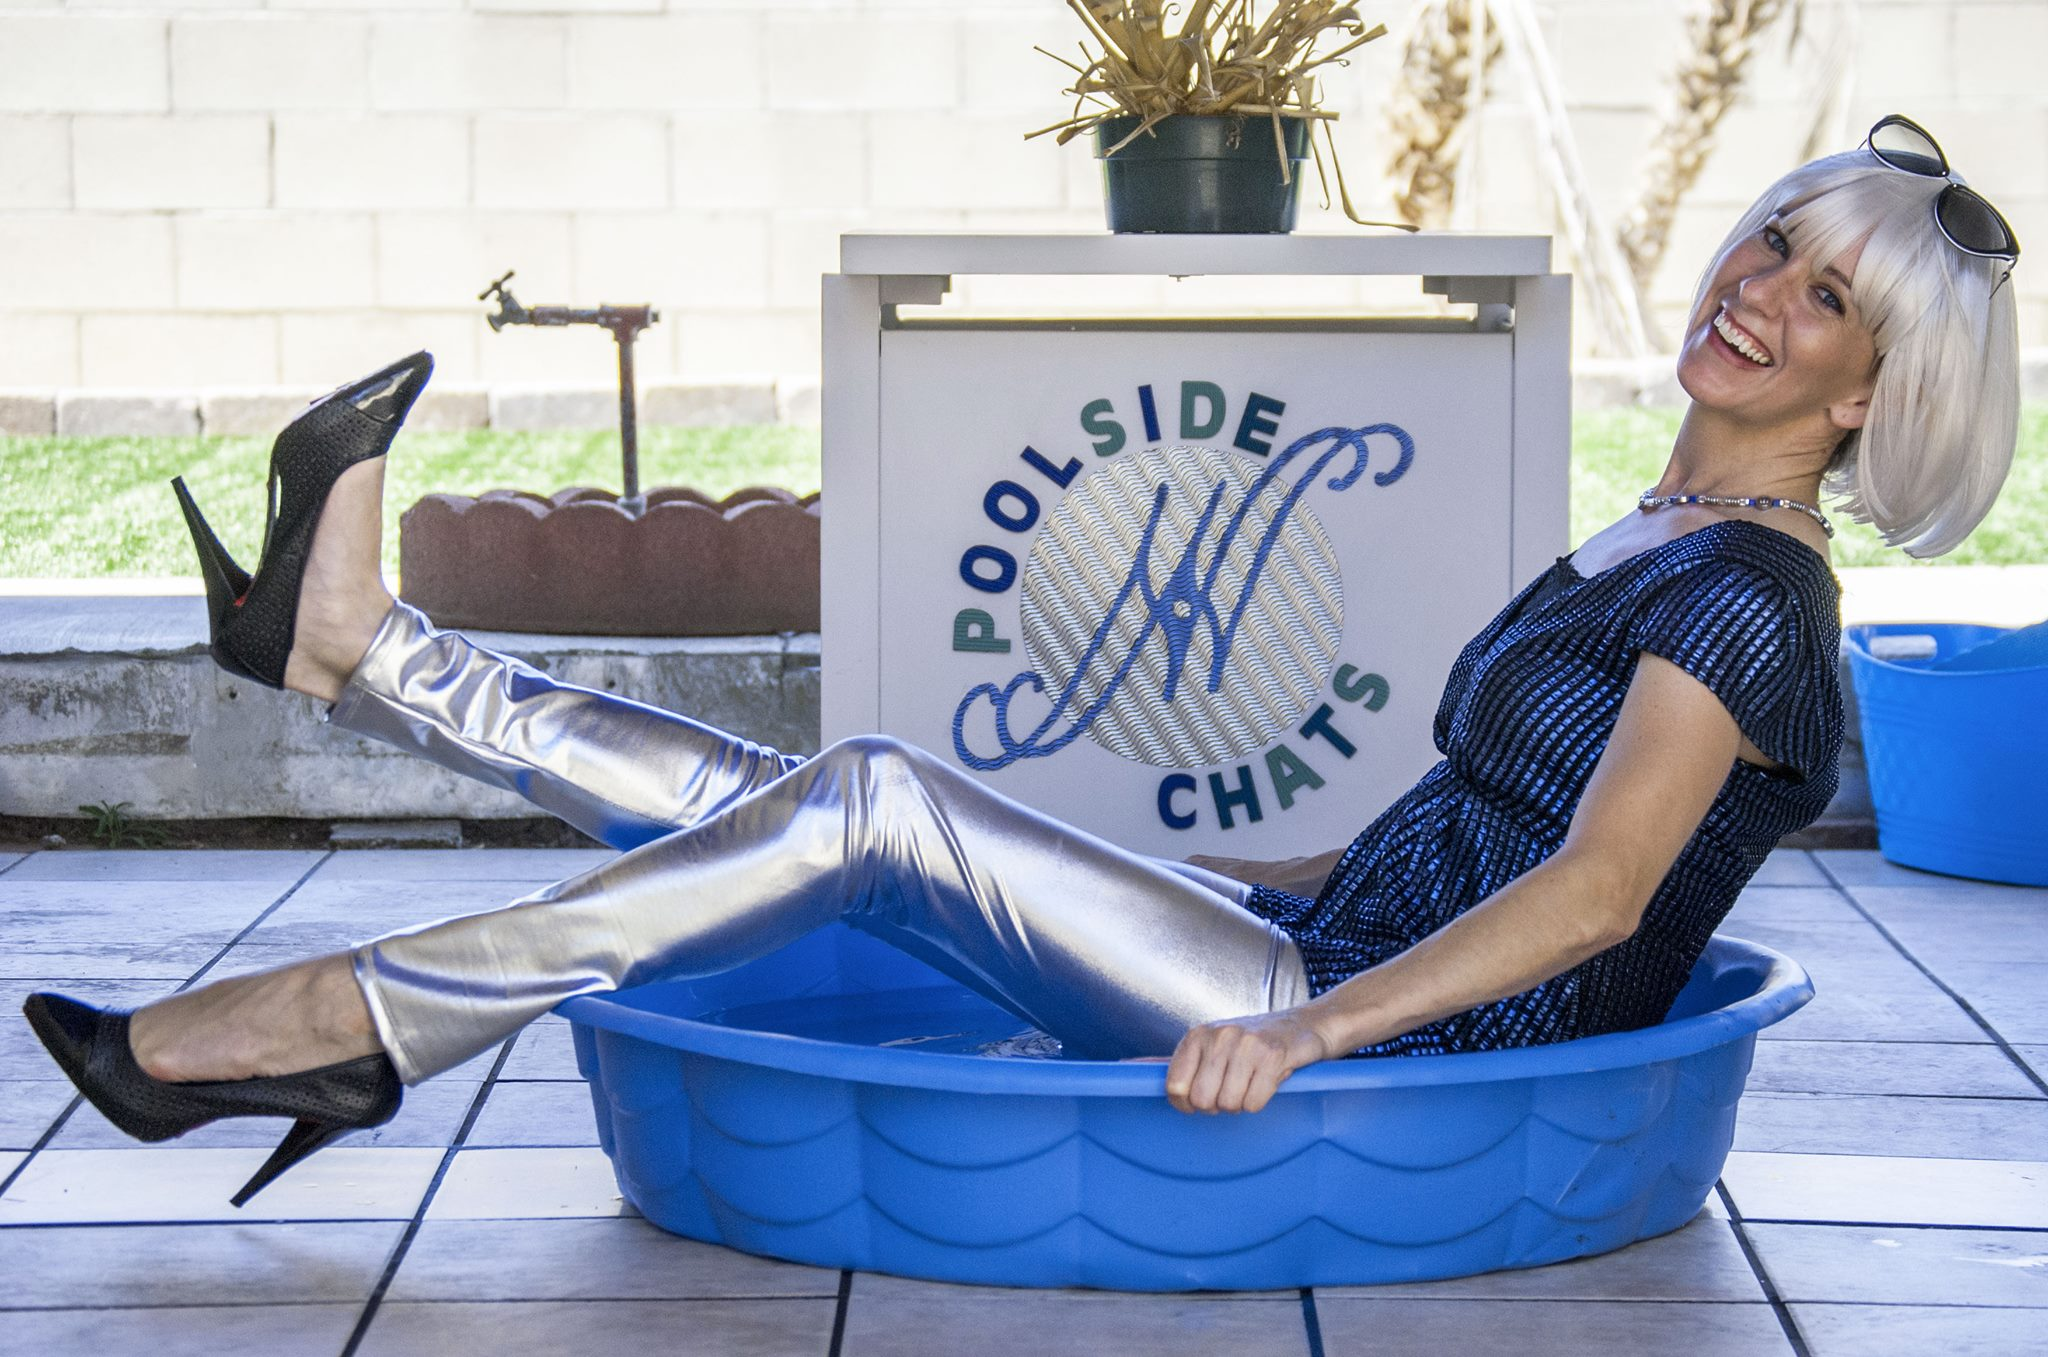 Poolside Chats is making waves…with new Celebrity Host Jessica Durbin